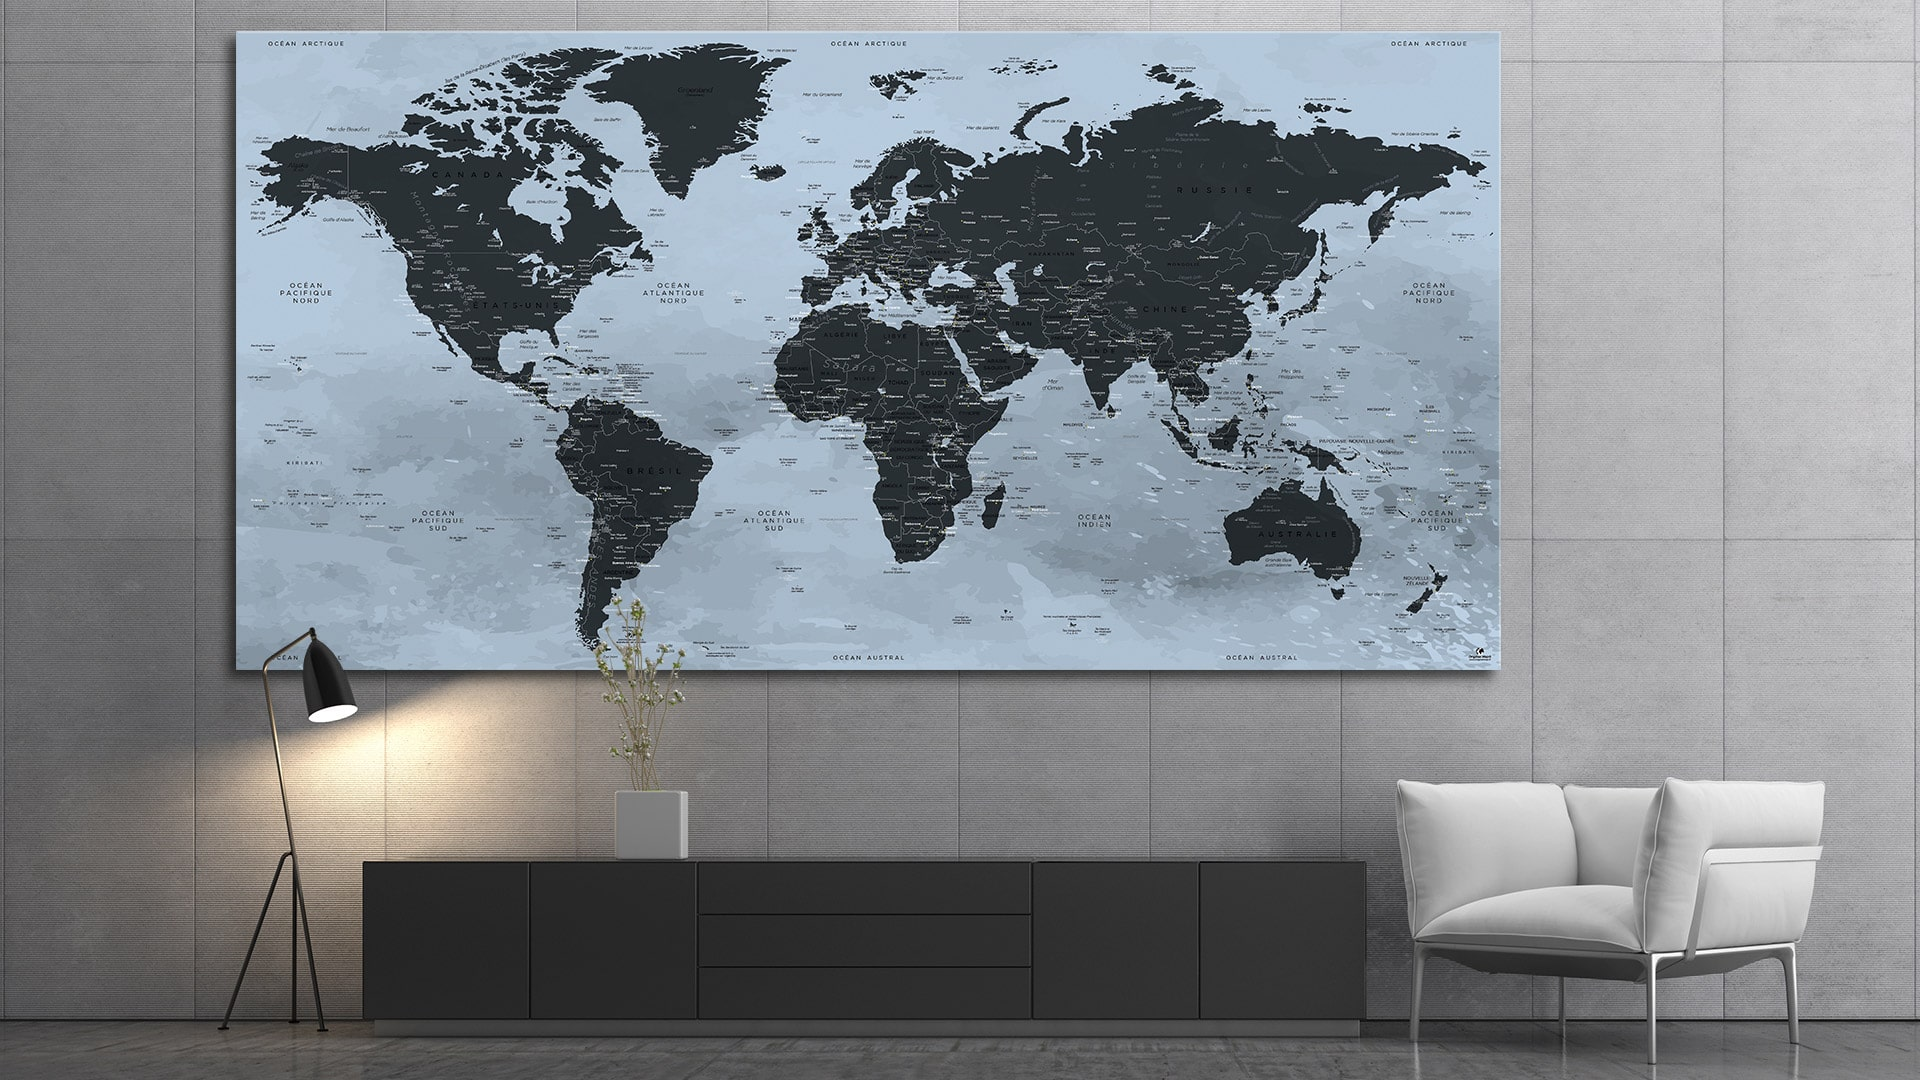 carte du monde tableau mappemonde tableau world map trolltunga. Black Bedroom Furniture Sets. Home Design Ideas